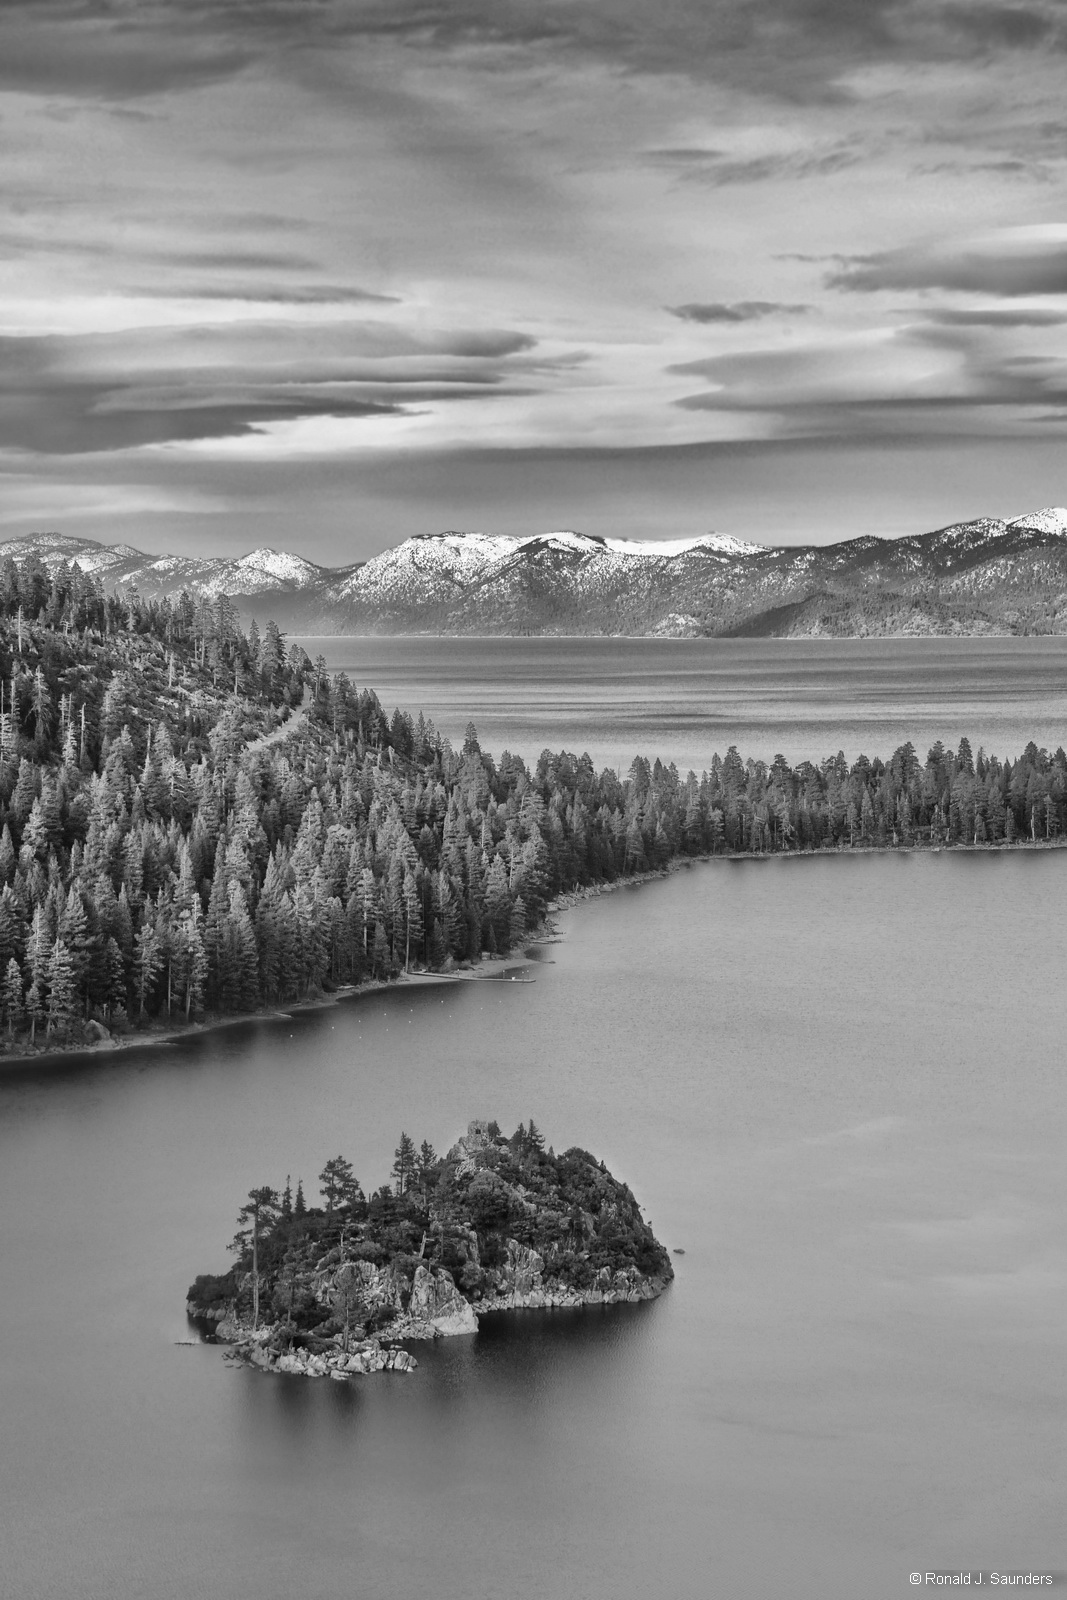 Tahoe, Lake, ron, Saunders, water, Ronald, saunders, black, white, ron, saunders, ronald, ronald j saunders, landscape, photography, , photo